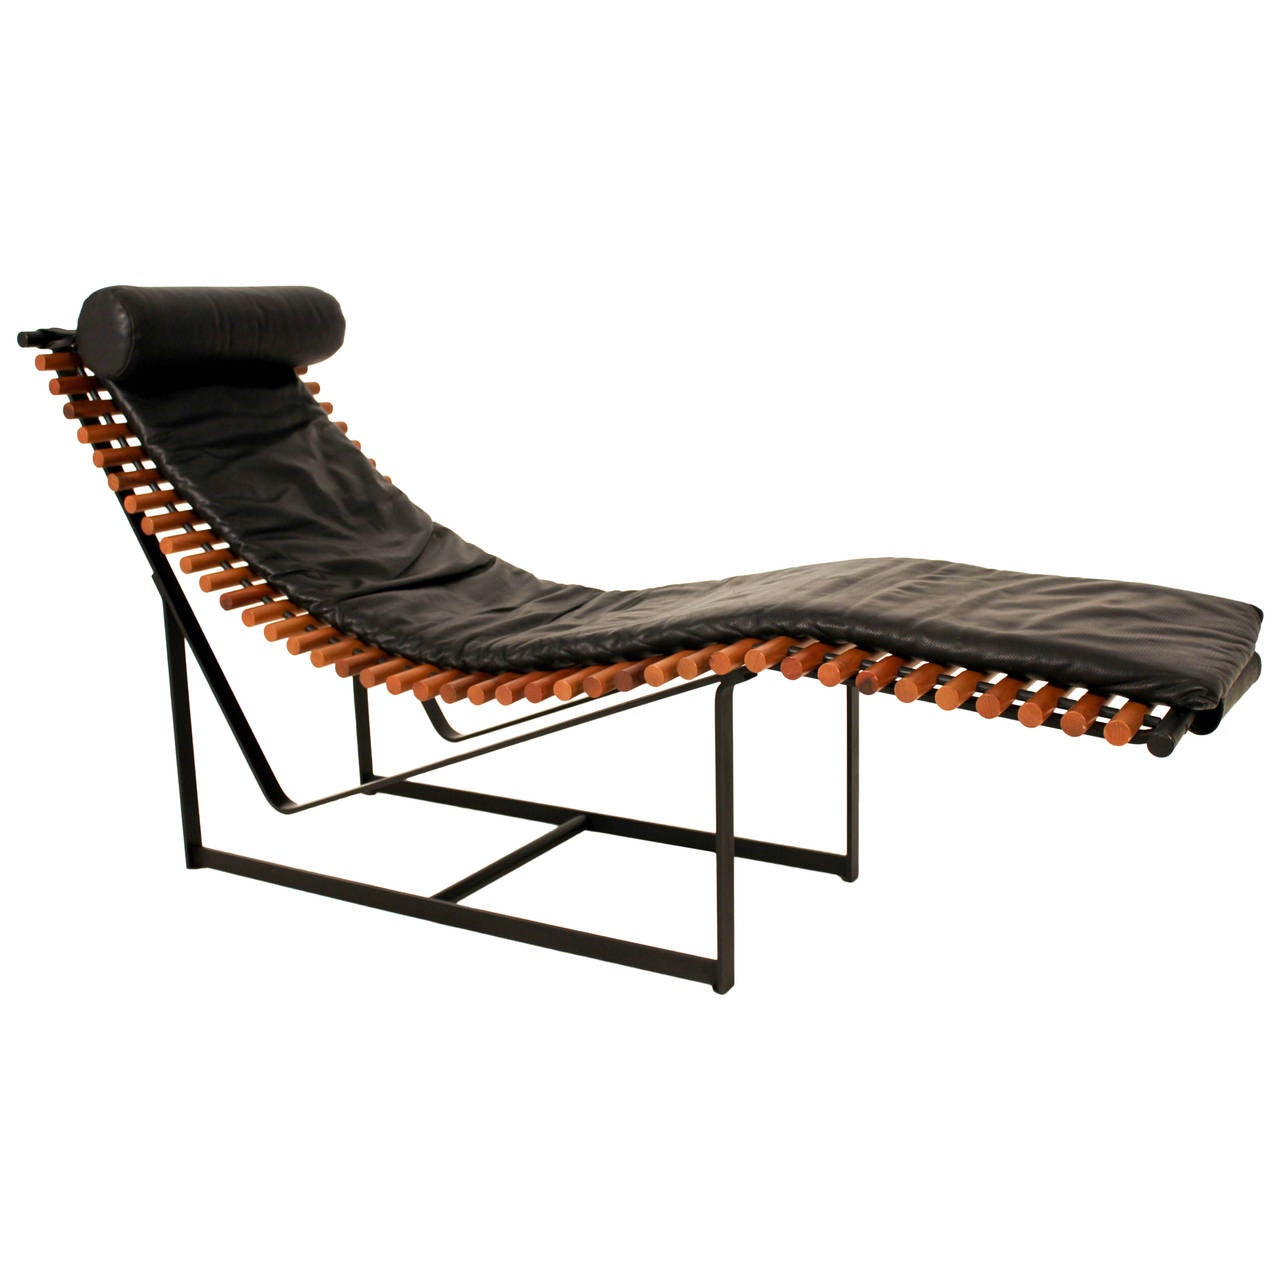 Funky mid century modern chaise longue 1970s for sale at for Chaise longue chilienne